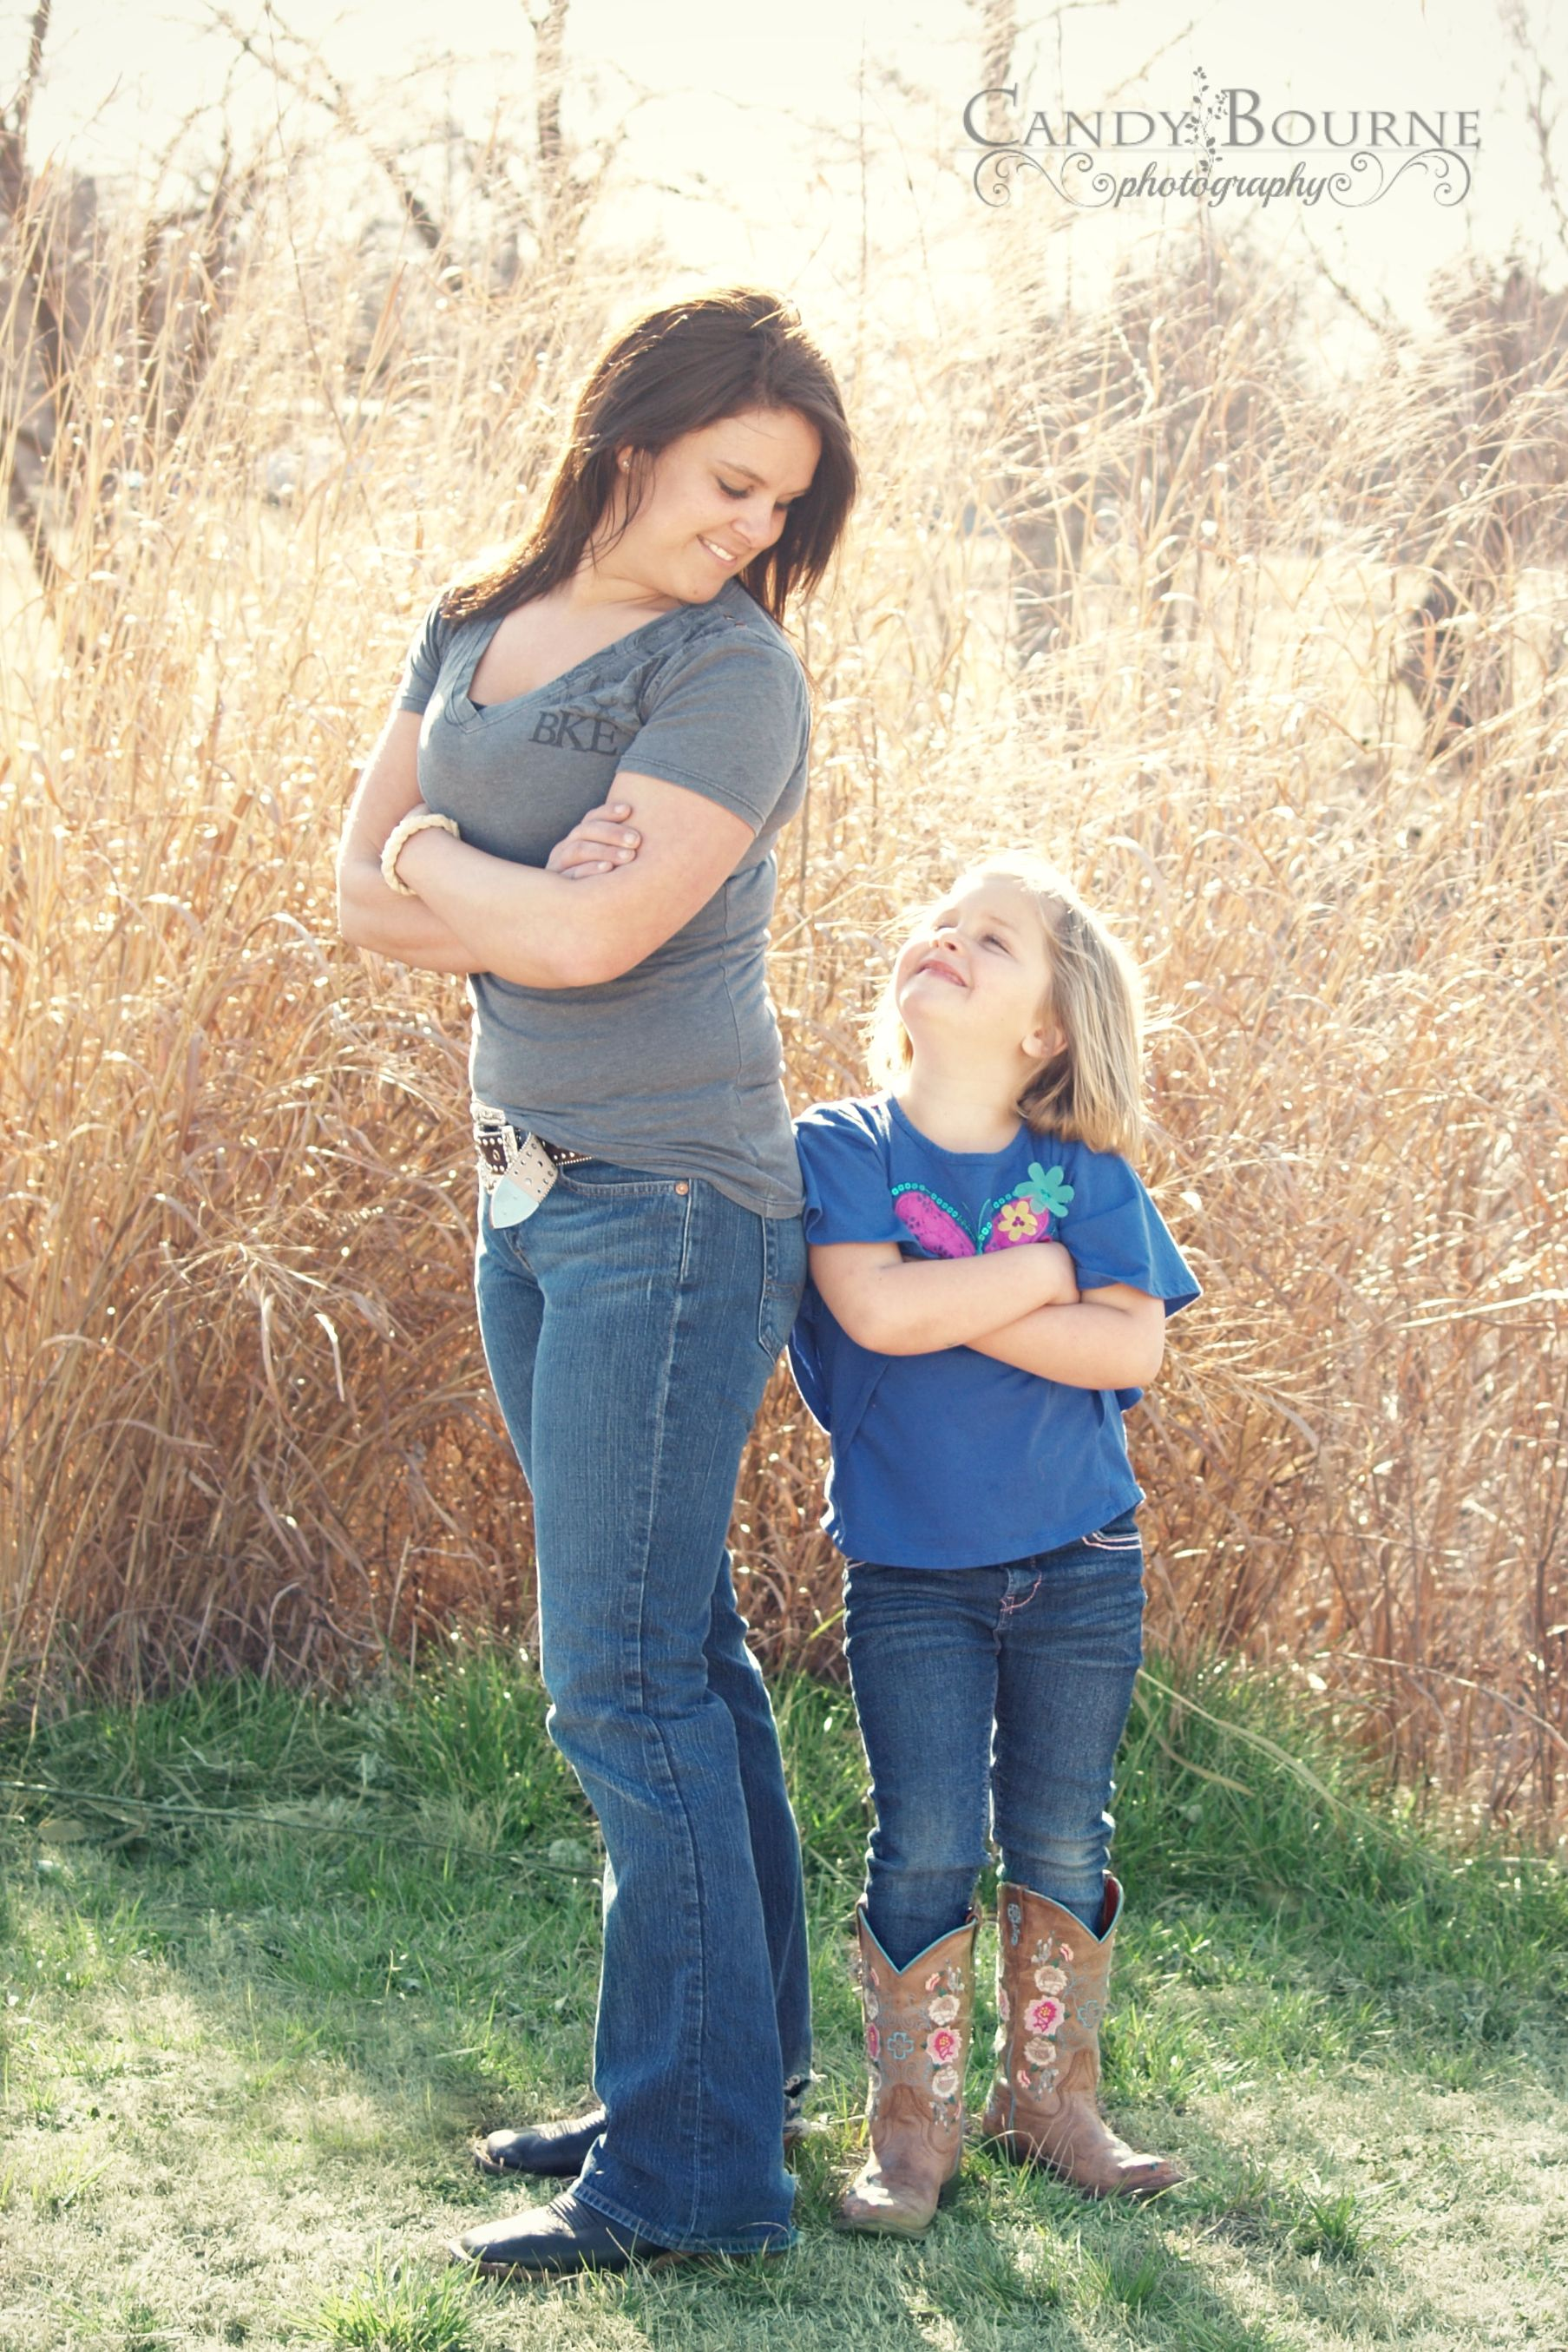 Family Pics Candy Bourne Photography Mom Daughter Pose Funny Cute